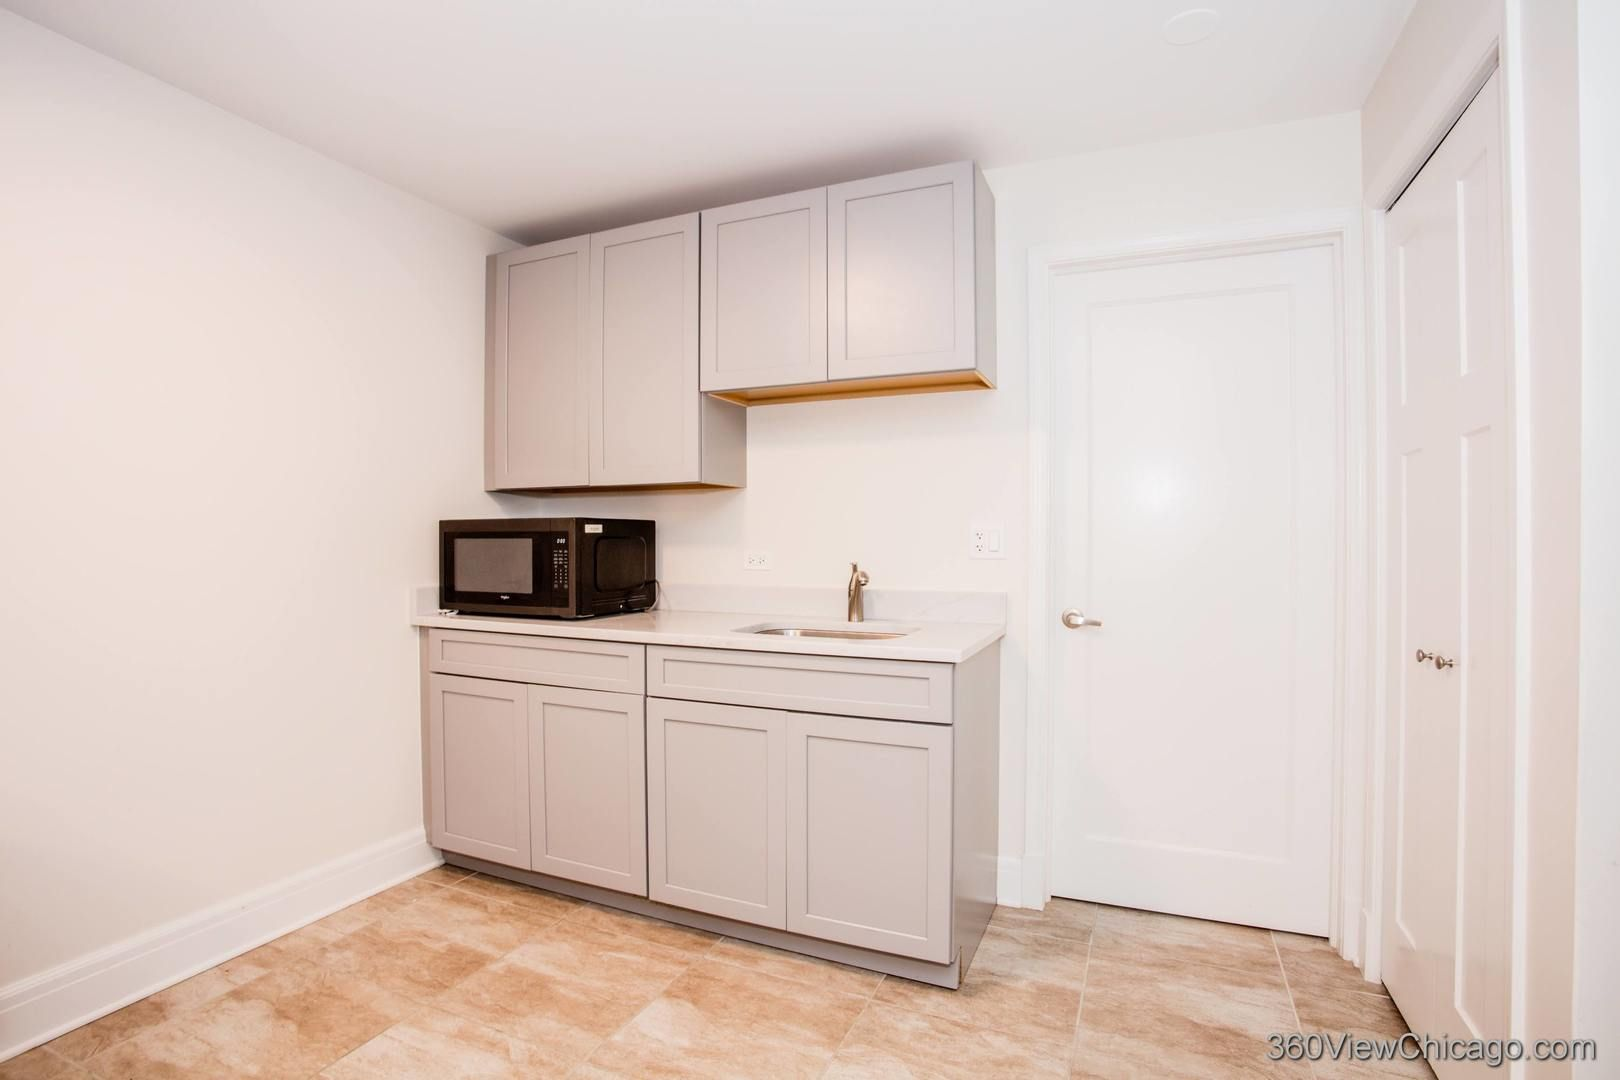 Photo 30: Photos: 1733 Troy Street in Chicago: CHI - Humboldt Park Residential for sale ()  : MLS®# 10911567